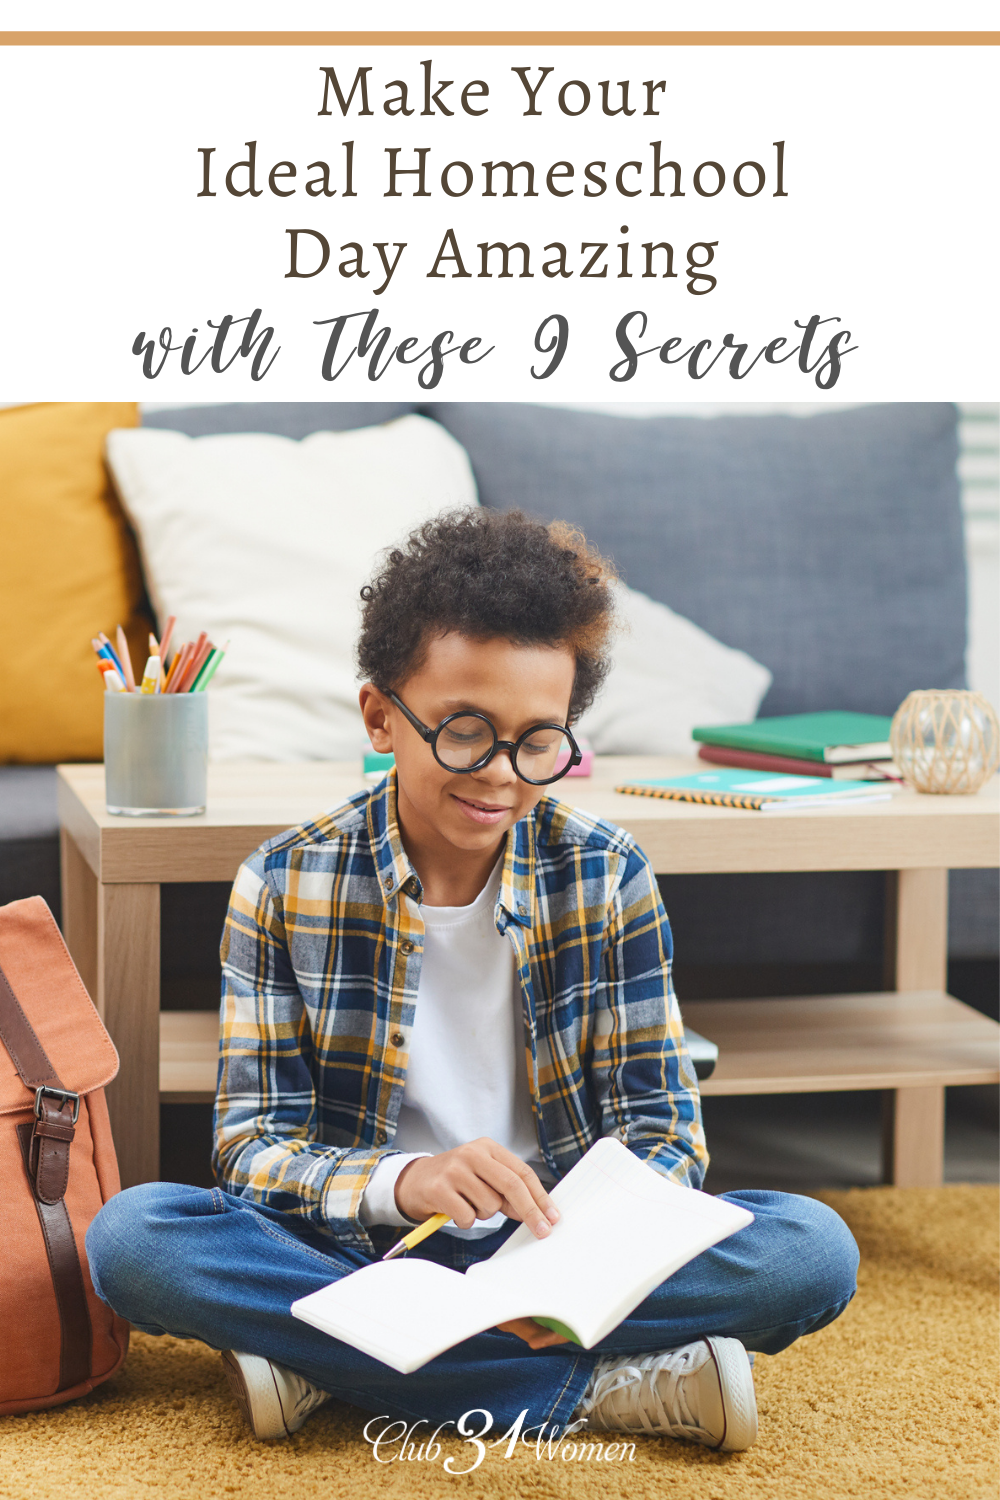 We often overestimate our ideal homeschool day, sending us into a frenzy of stress and overwhelming ourselves and our children. Simplify it. via @Club31Women